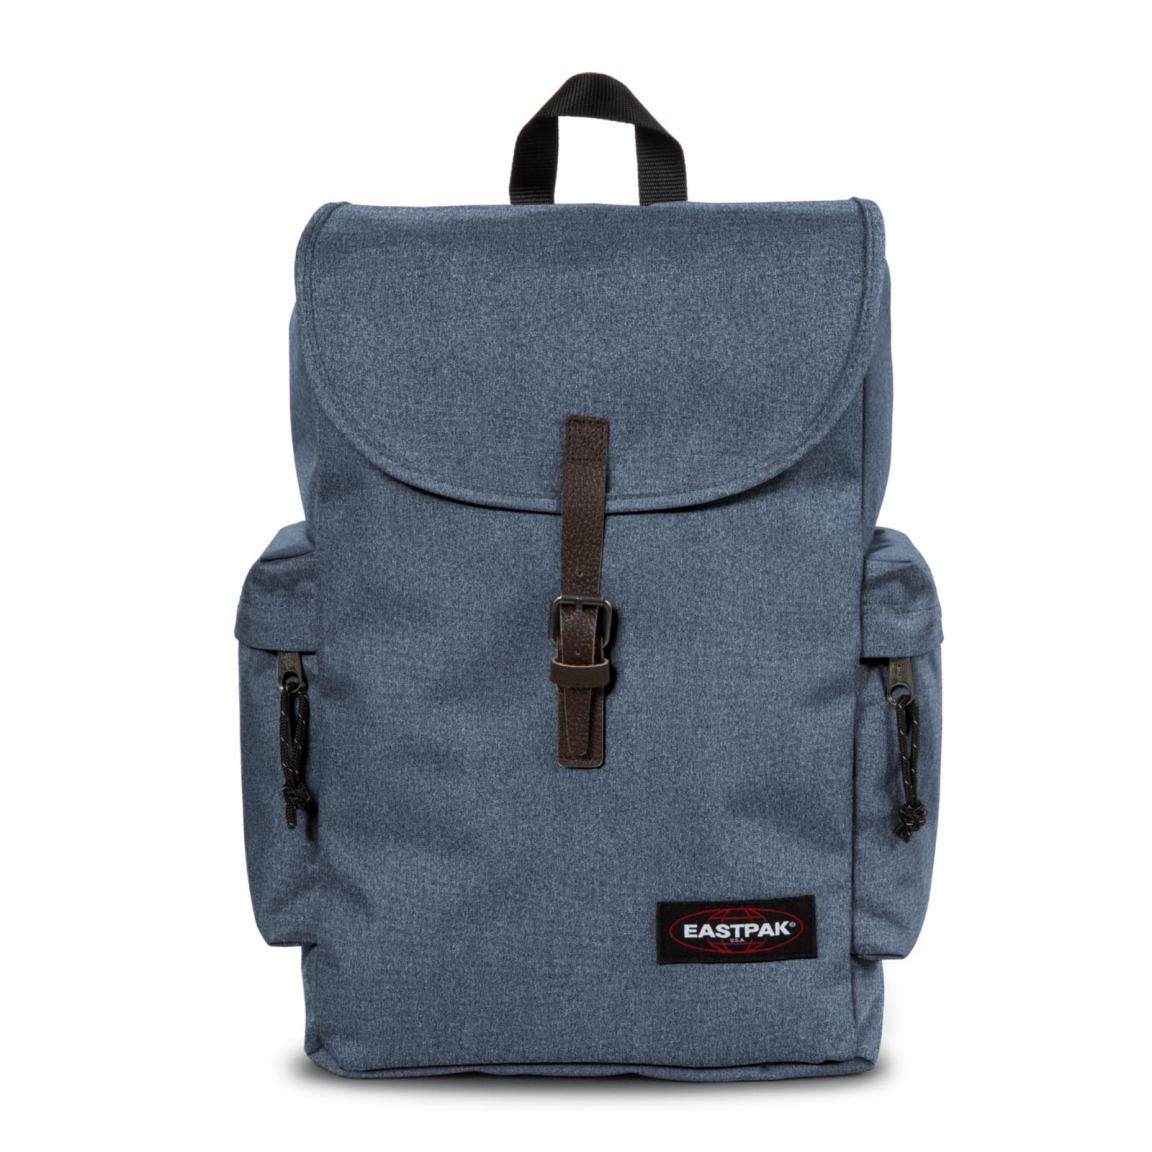 eastpak austin rucksack double denim blau bags more. Black Bedroom Furniture Sets. Home Design Ideas